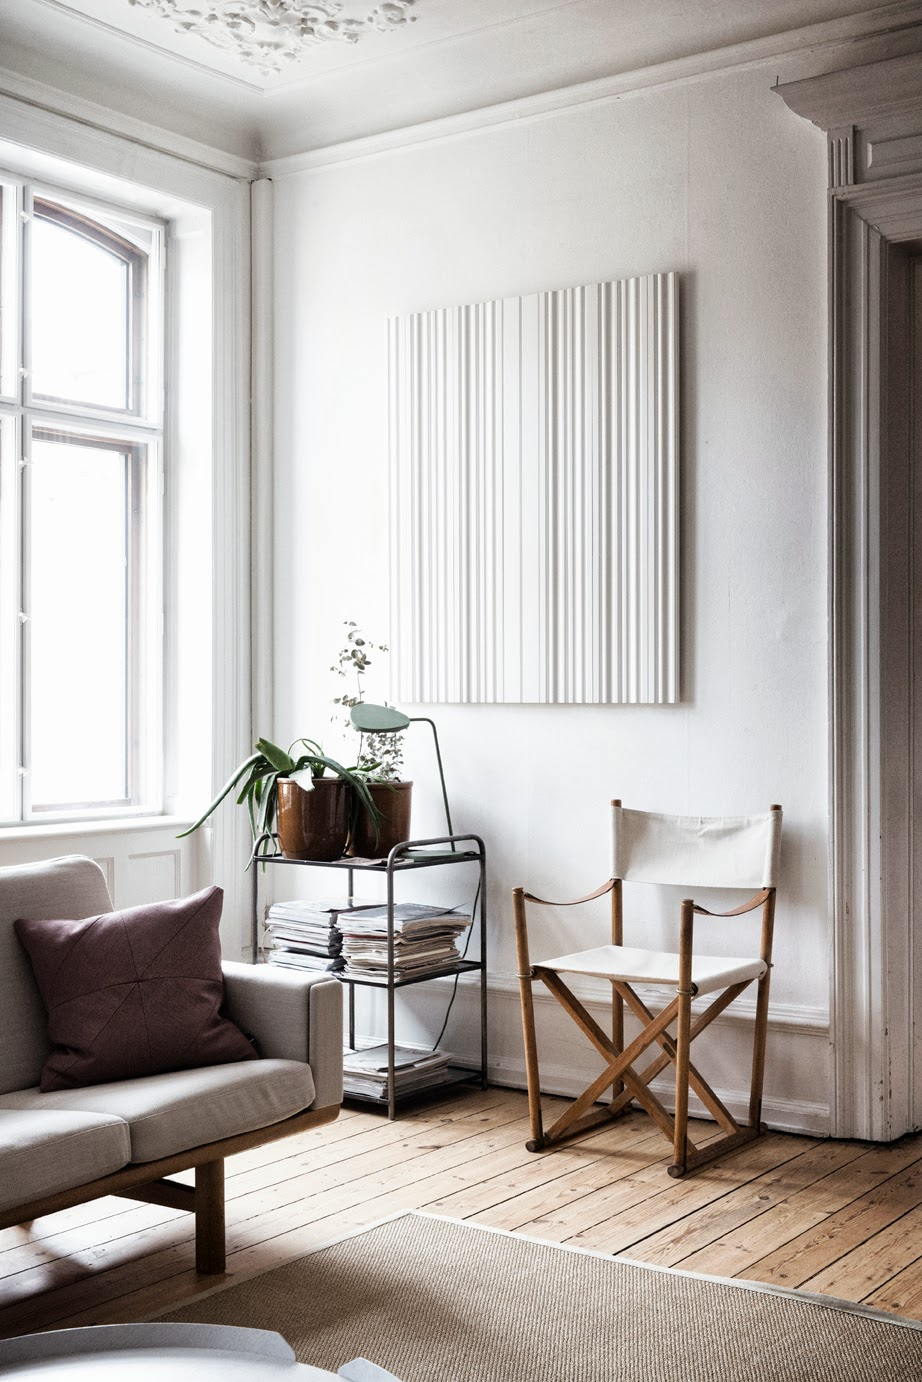 The home of graphic designer Tanja Vibe for Elle Decoration 4